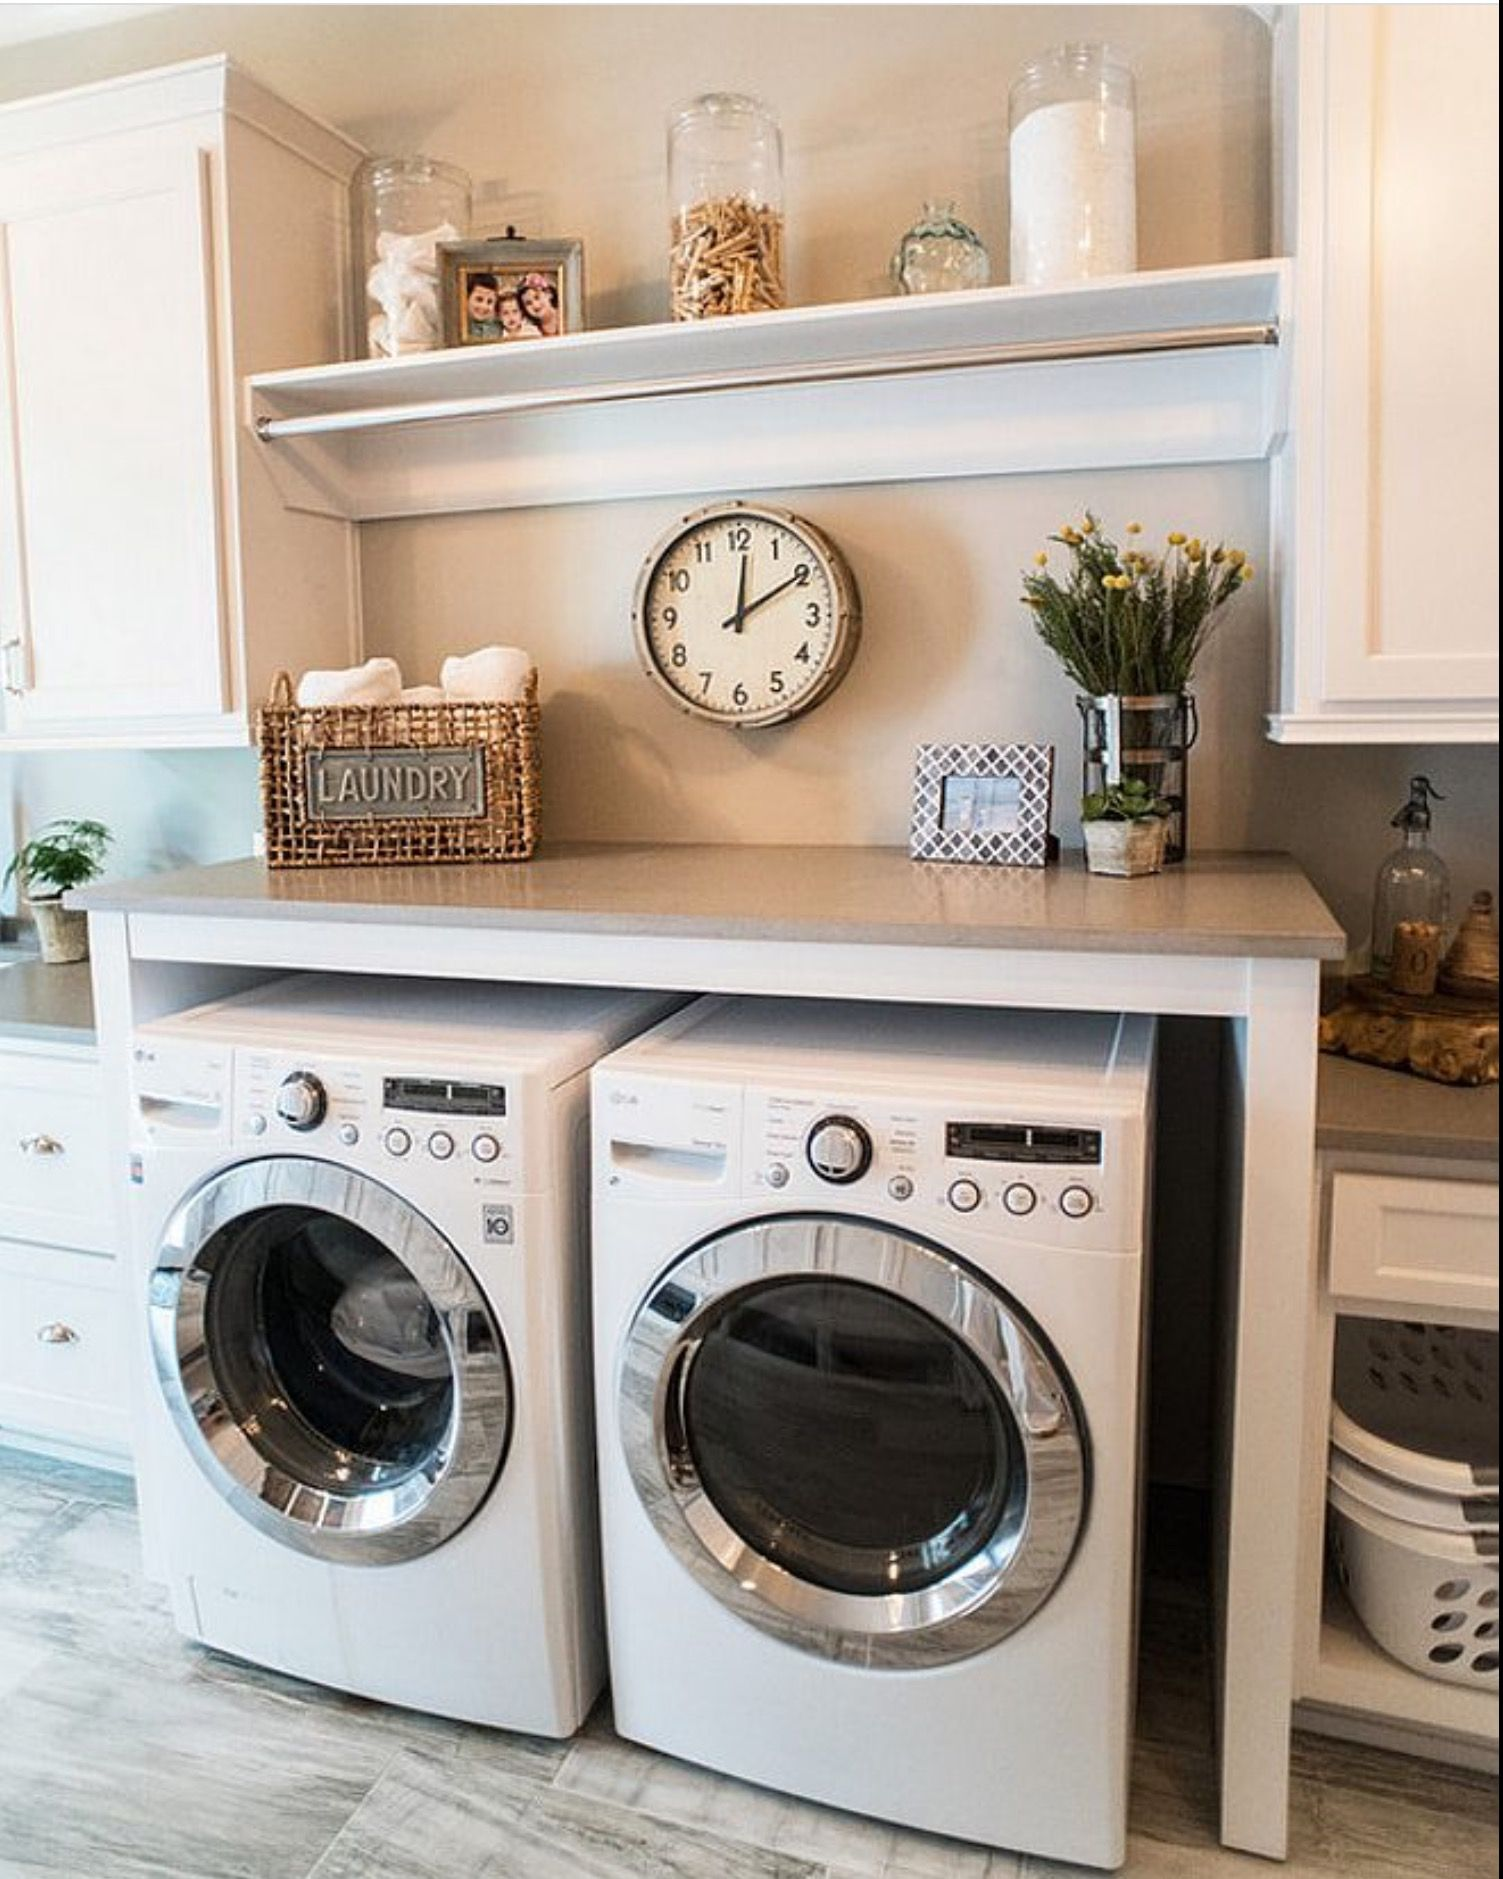 Laundry Room Combines White Cabinet With Gray Quartz Countertop And